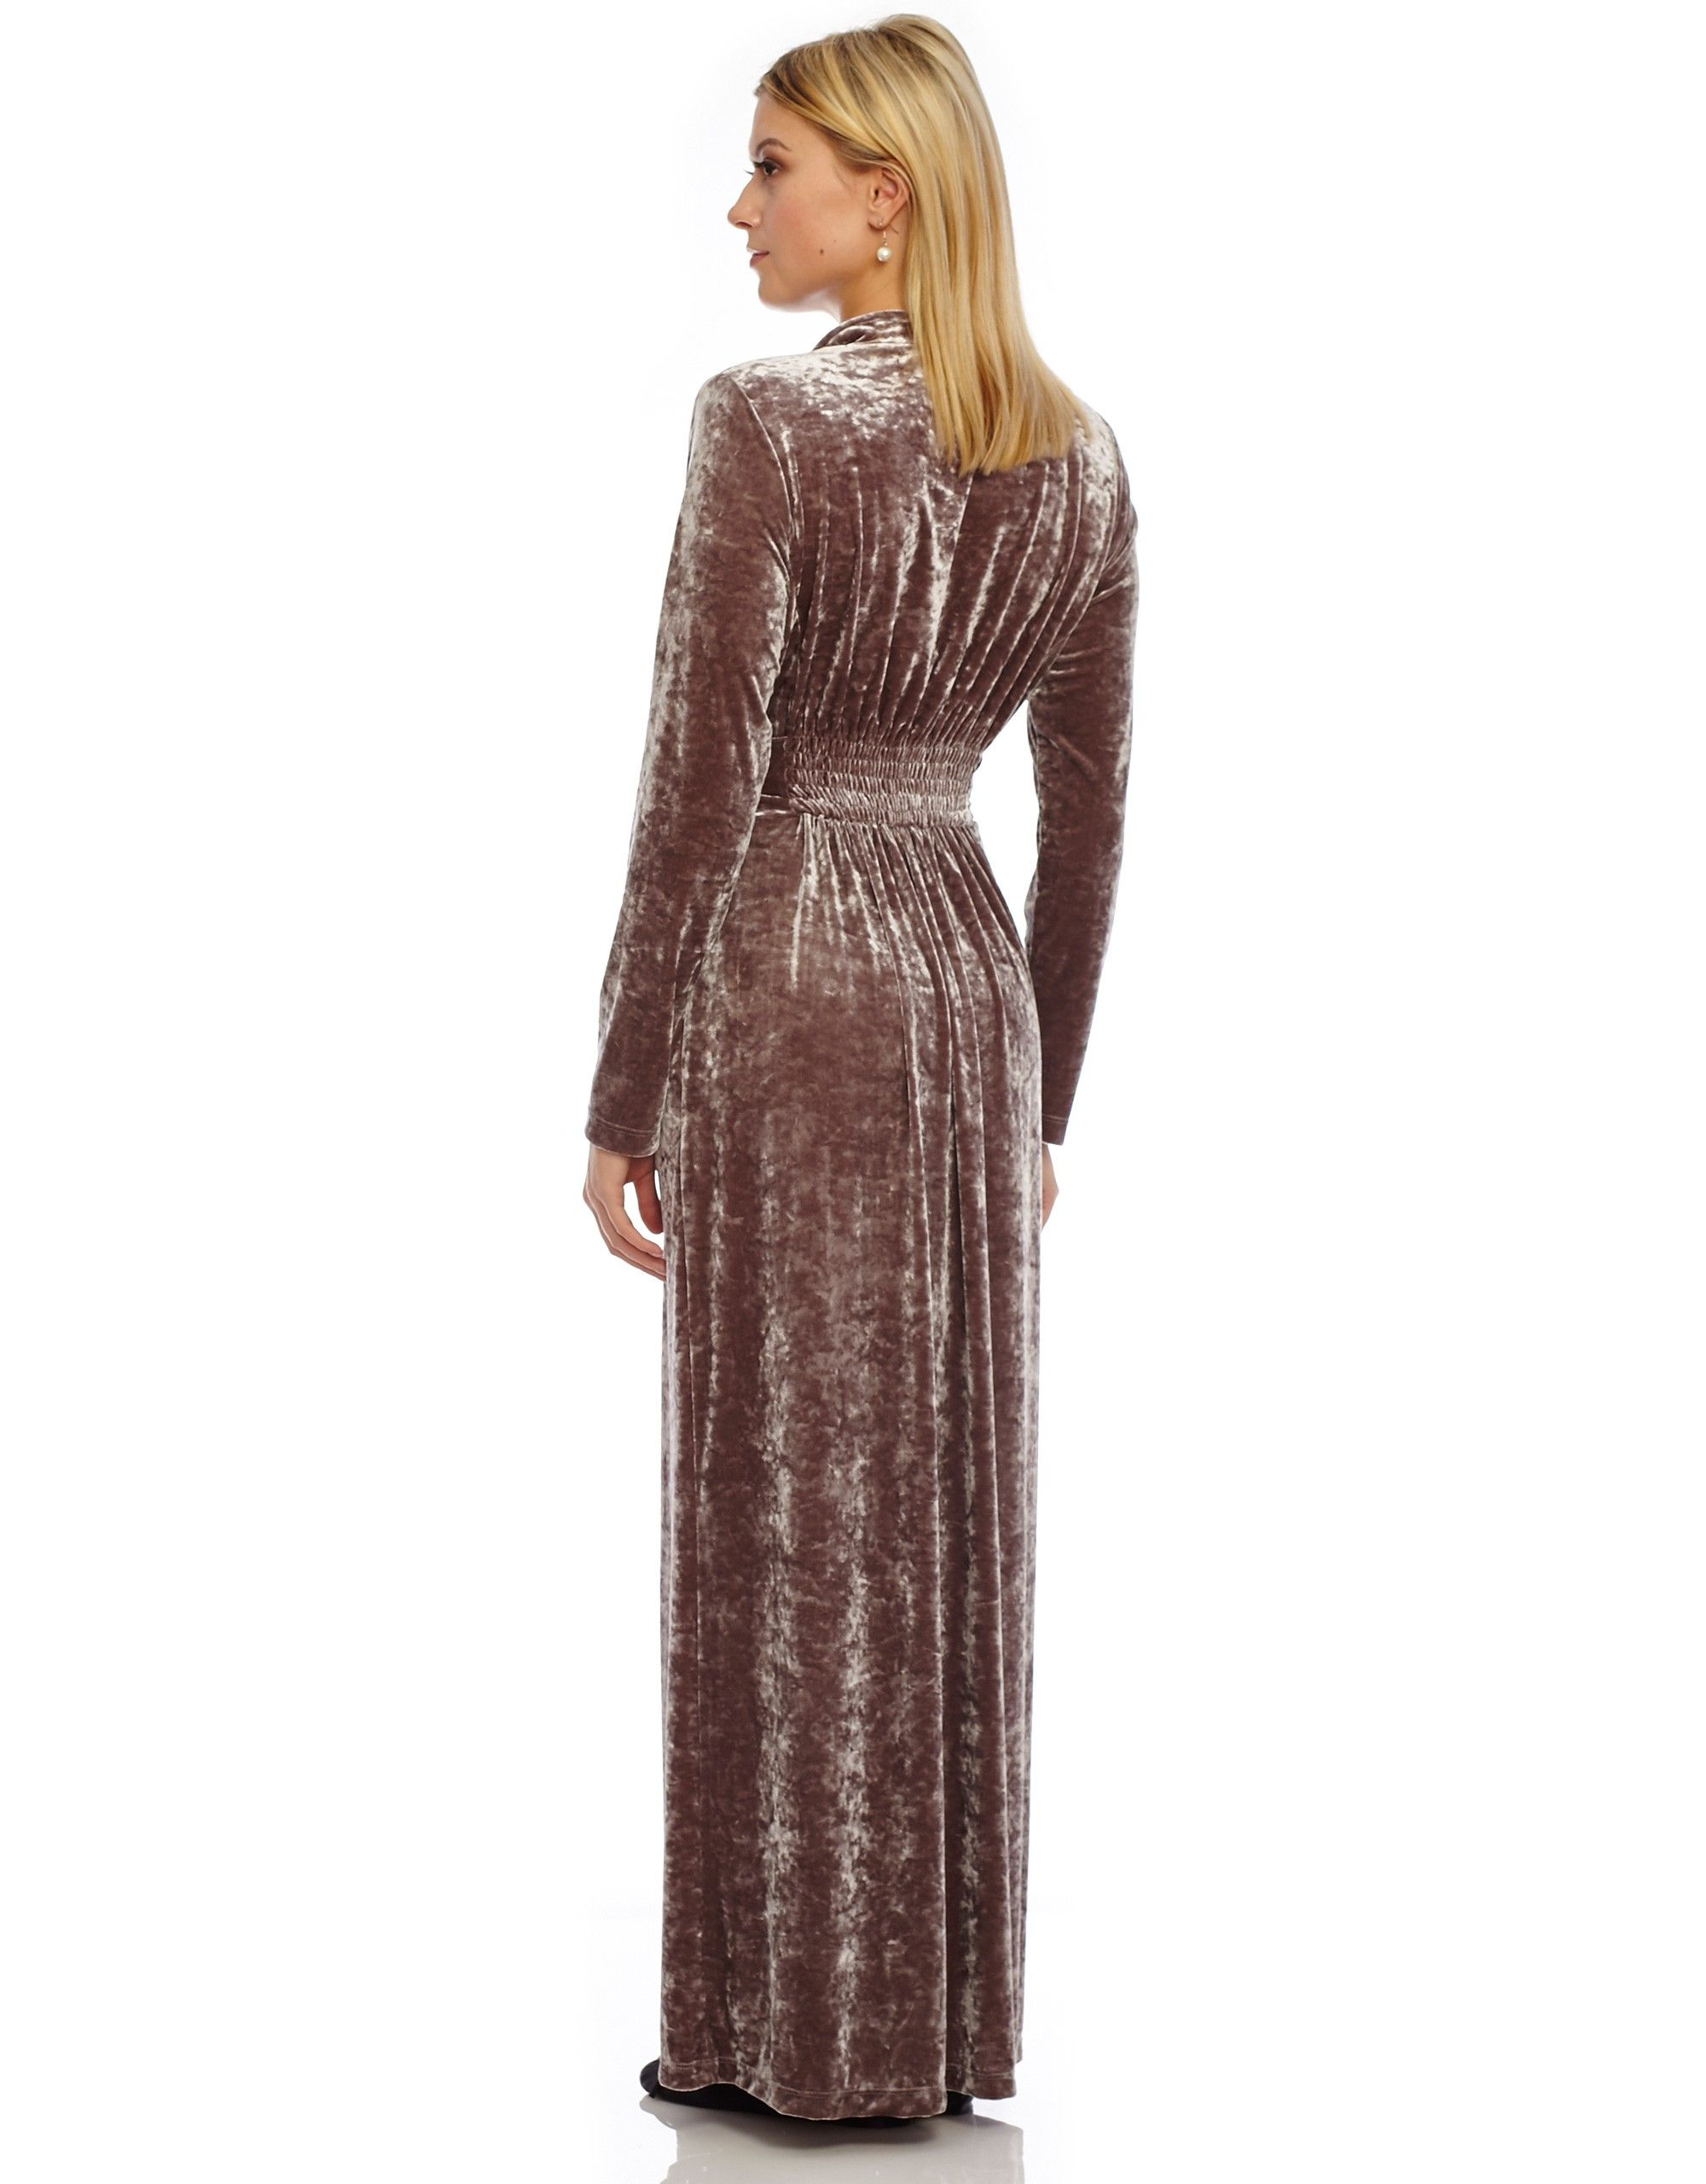 13801ccec1b Crushed Velvet Wrap Robe with Shirred Back - Morning Robes - Robes and  Maxis at The Lingerie Shop New York